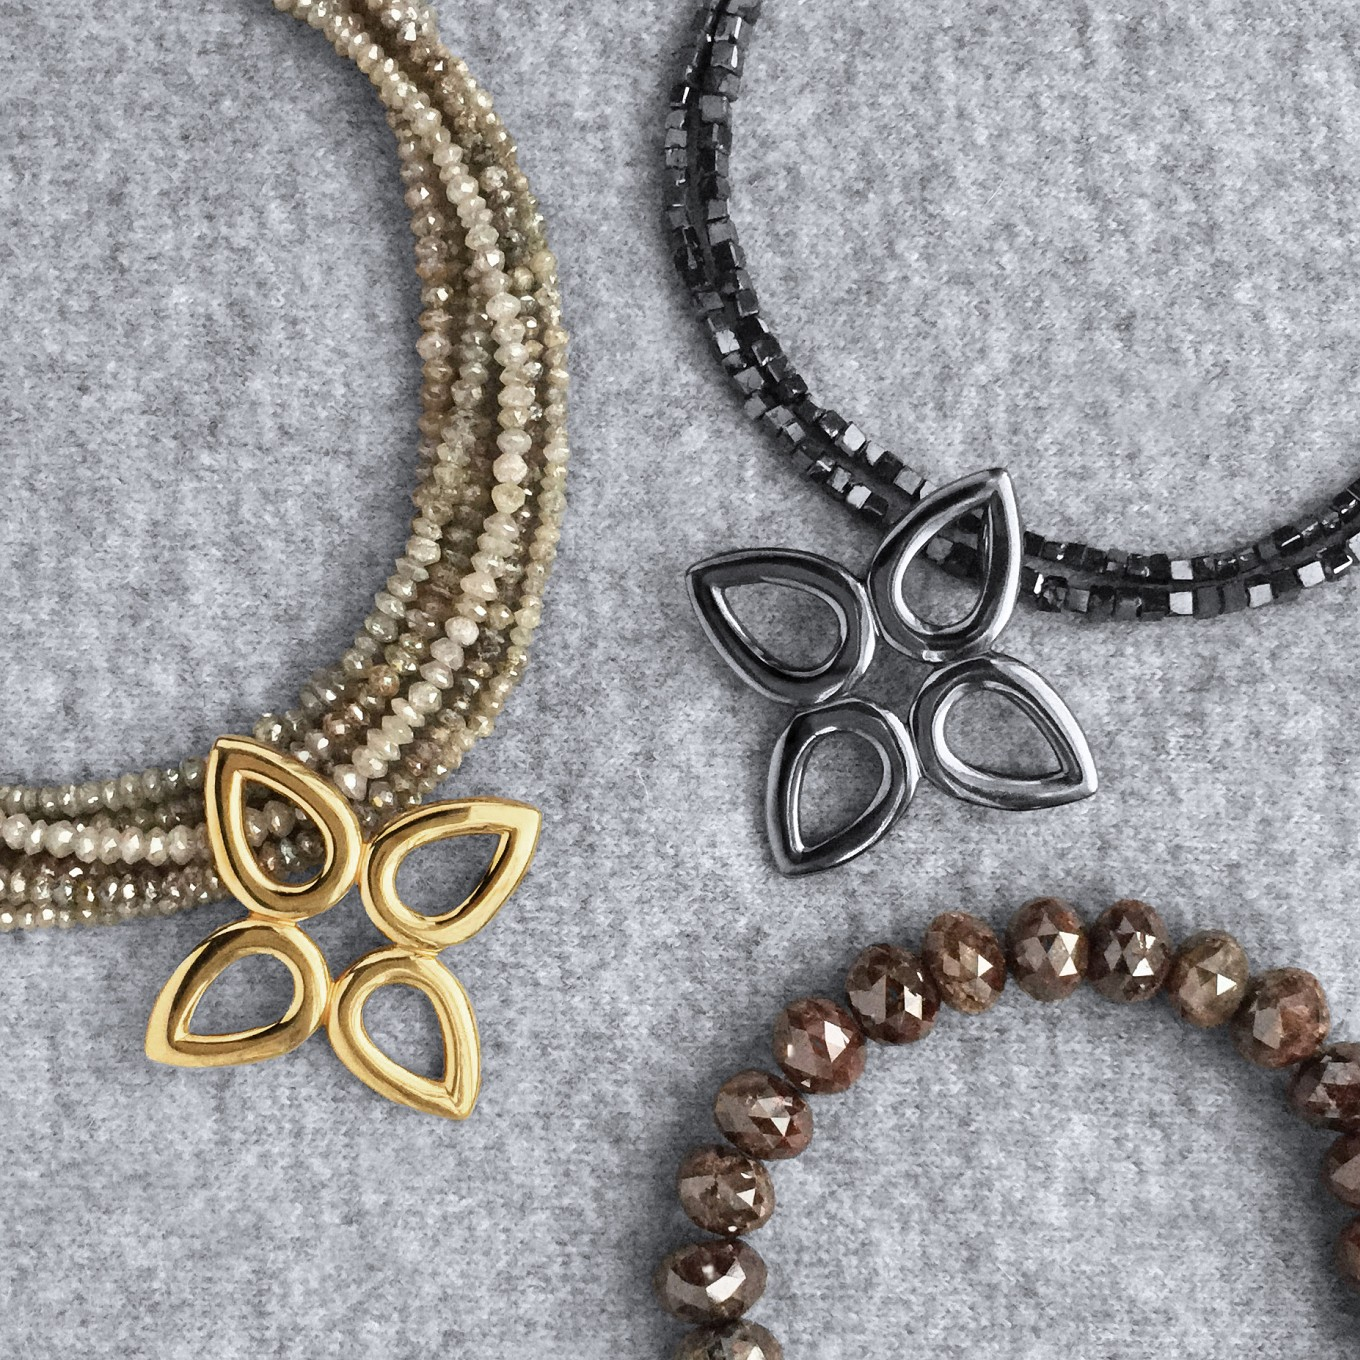 BROWN, BLACK & CHAMPAGNE FANCY COLOURED FACETED DIAMOND NECKLACES SHOWN WITH SEVILLA MOTIFSPRICE ON REQUEST